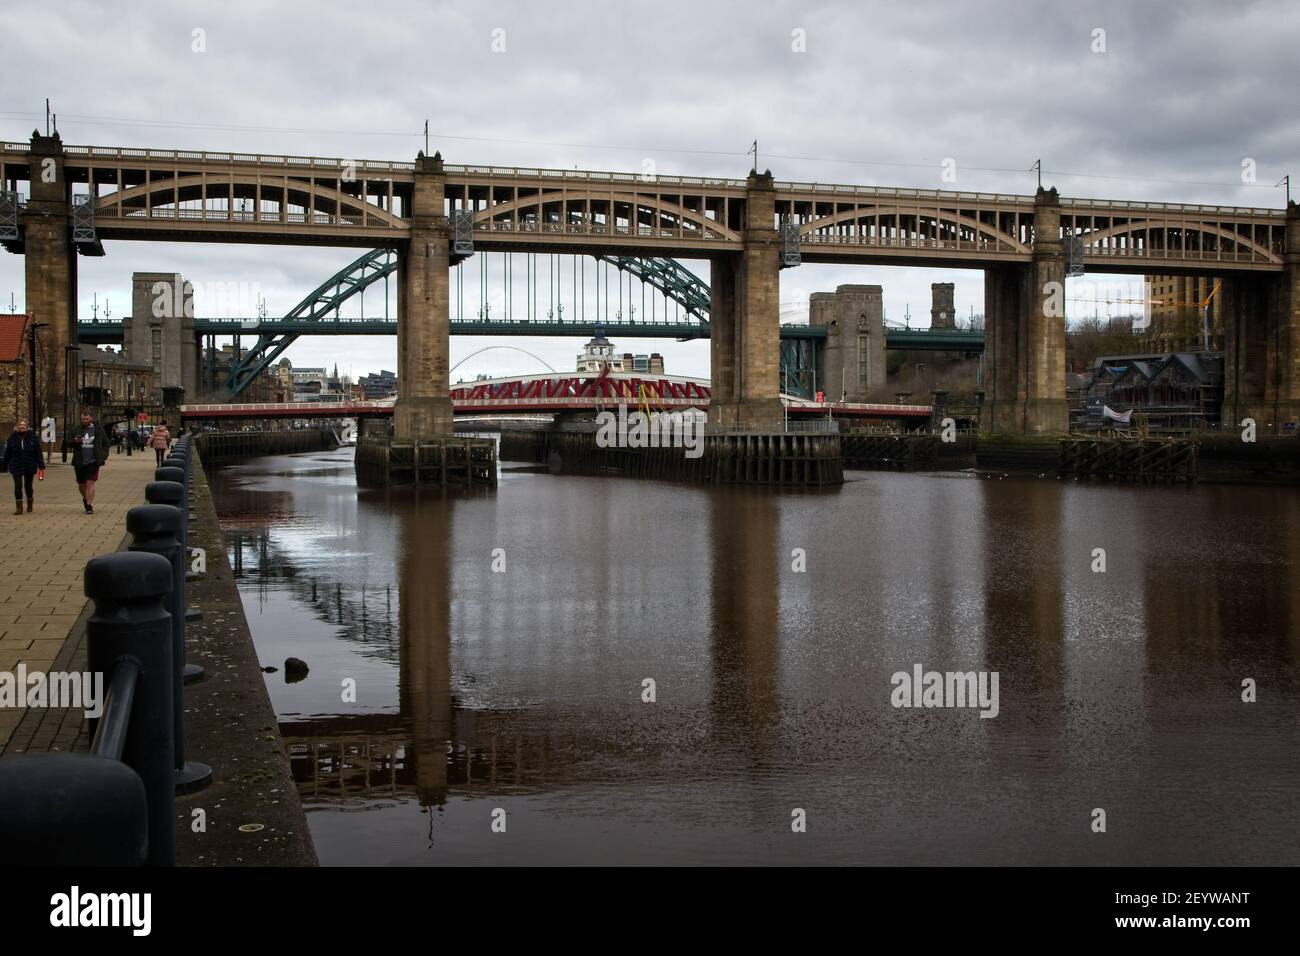 The High Level Bridge is a road and railway bridge spanning the River Tyne between Newcastle upon Tyne and Gateshead in North East England. Stock Photo